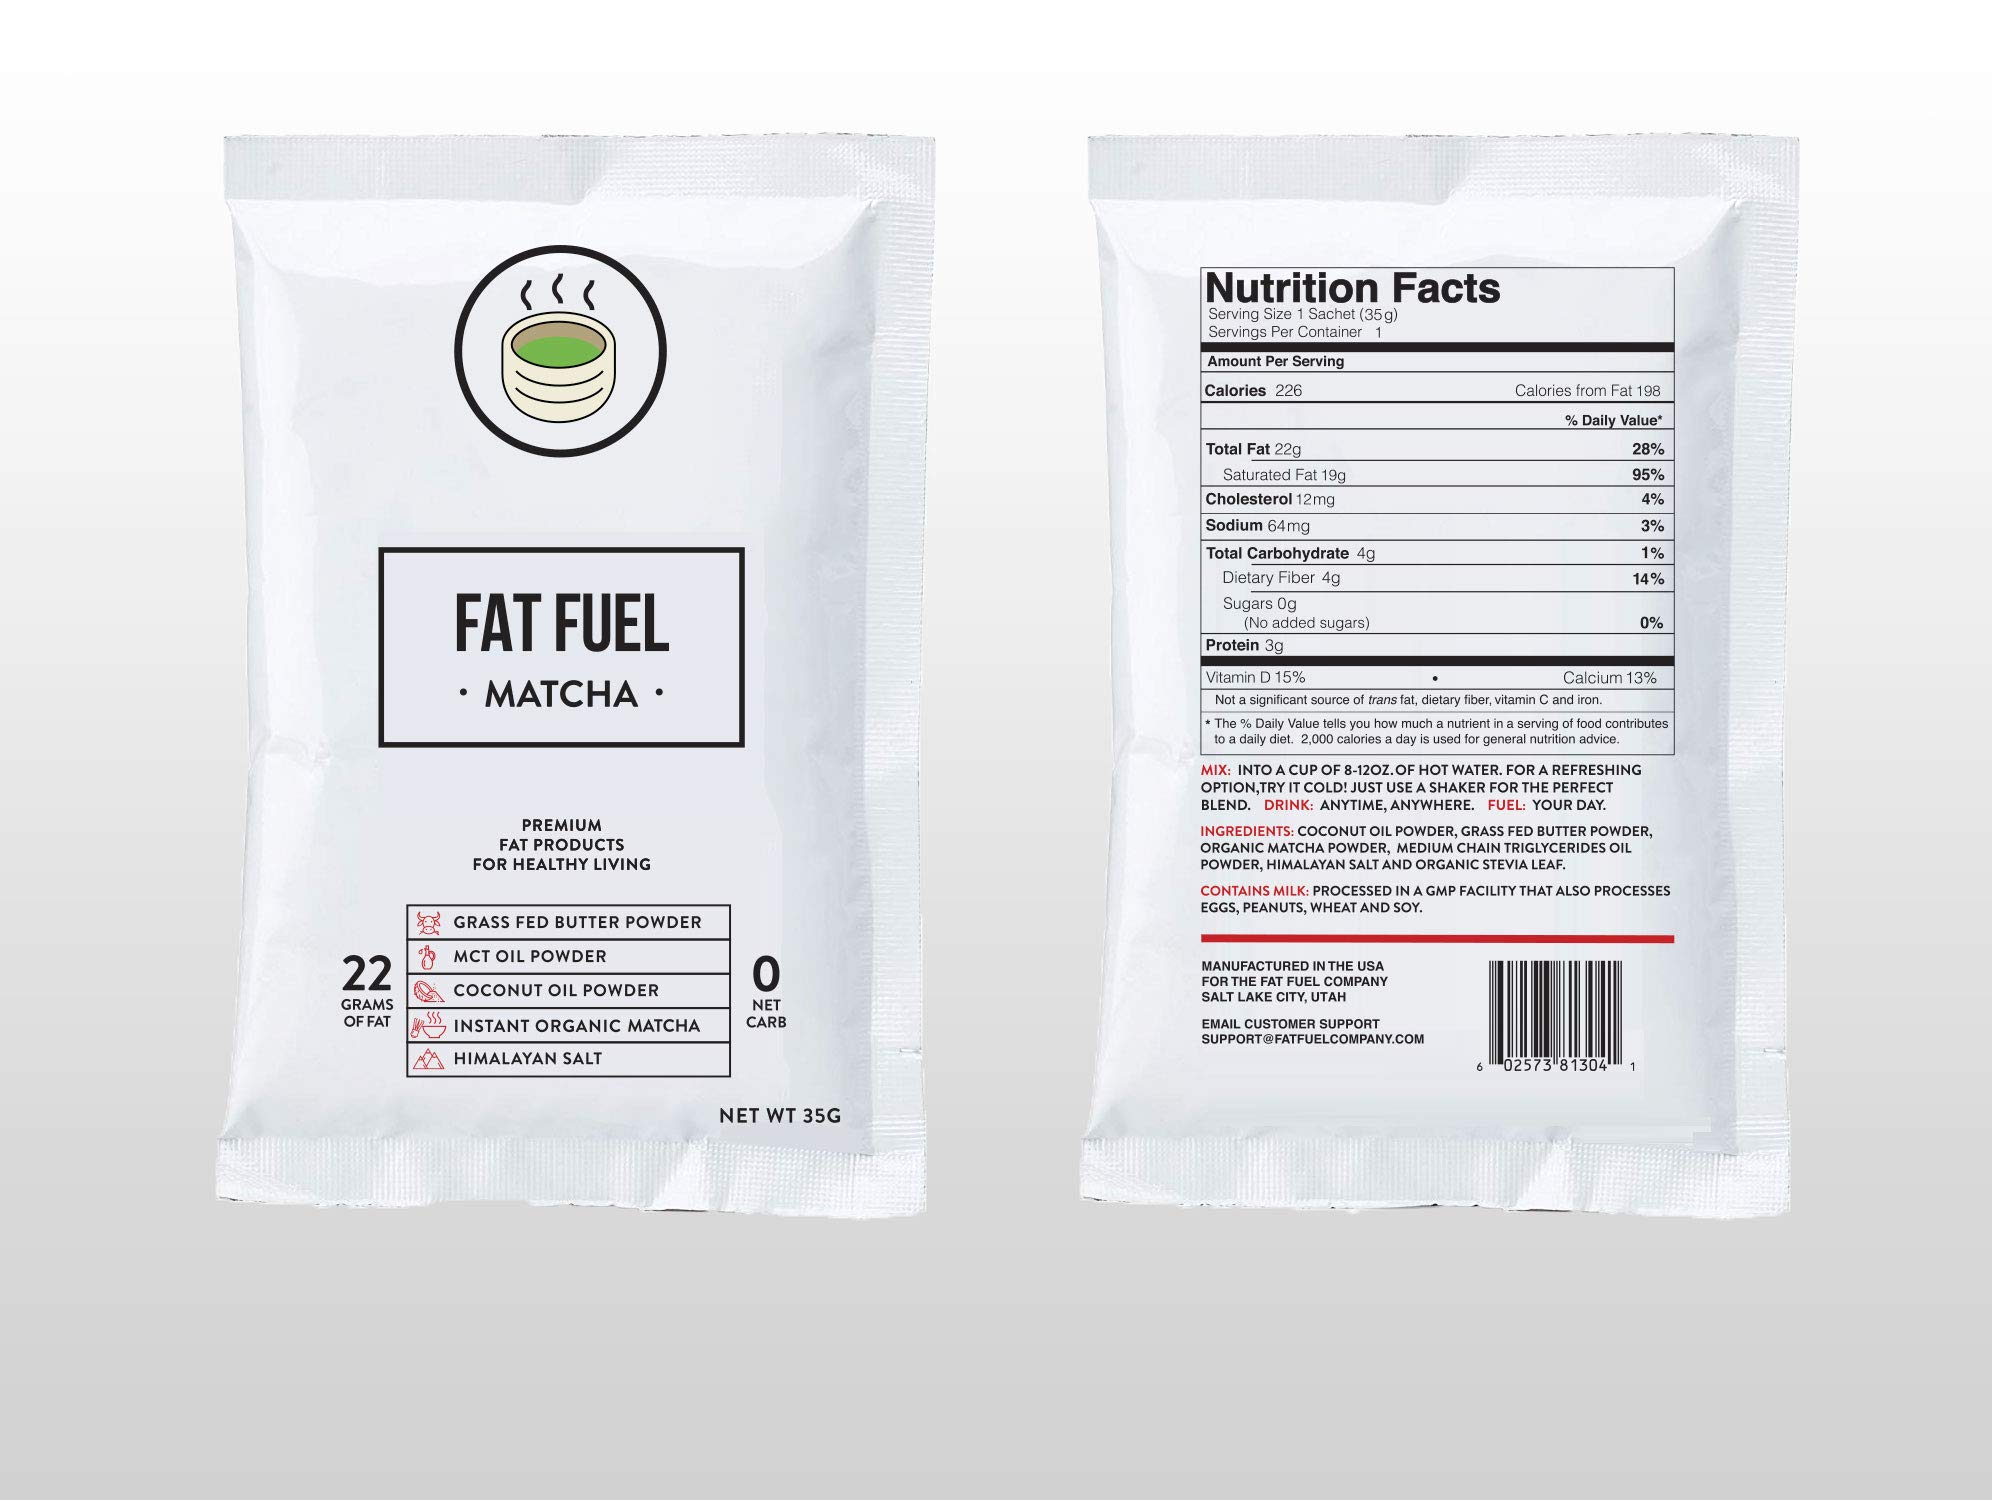 Fat Fuel Company Keto Matcha Green Tea Powder | MCT, Coconut Oil, Himalayan Salt & Grass-Fed Butter | Organic Ingredients | Energy, Focus , Detox | Perfect Drink For Low-Carb Diet | 15 Packets by The Fat Fuel Company (Image #5)